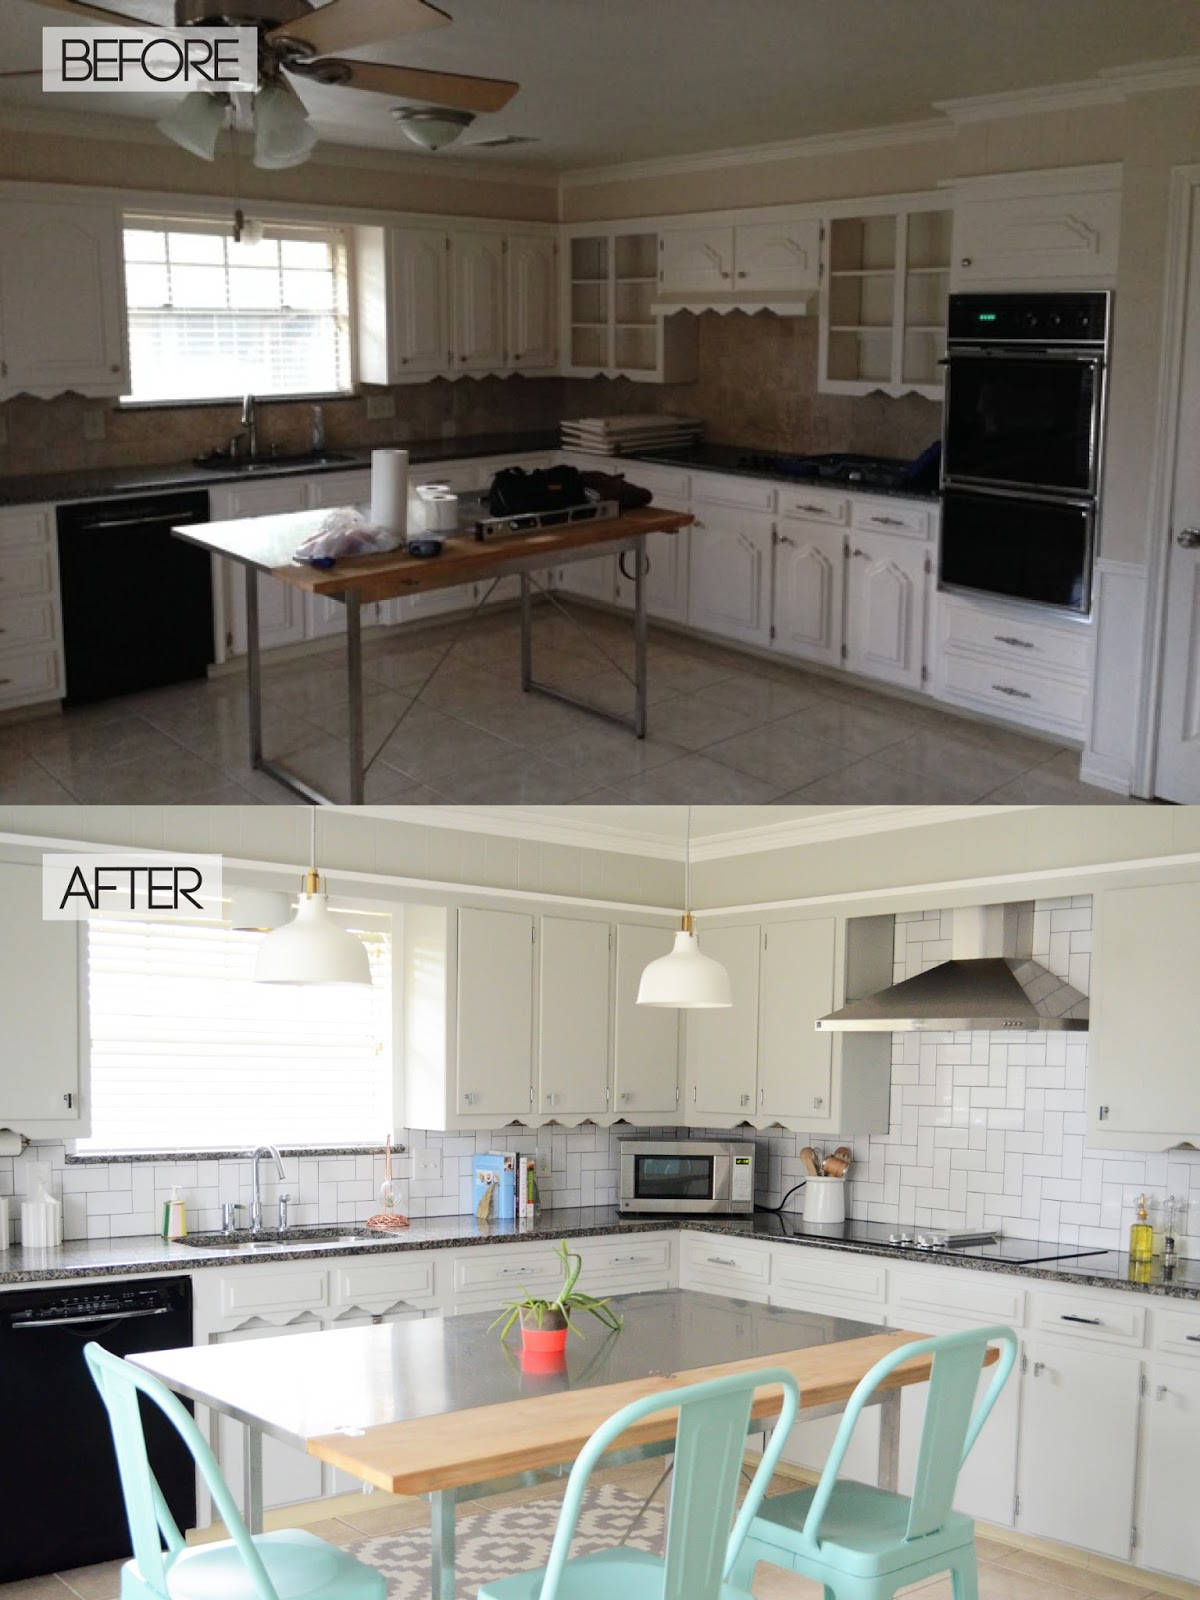 Stacy charlie project update kitchen remodel for Small kitchen updates on a budget